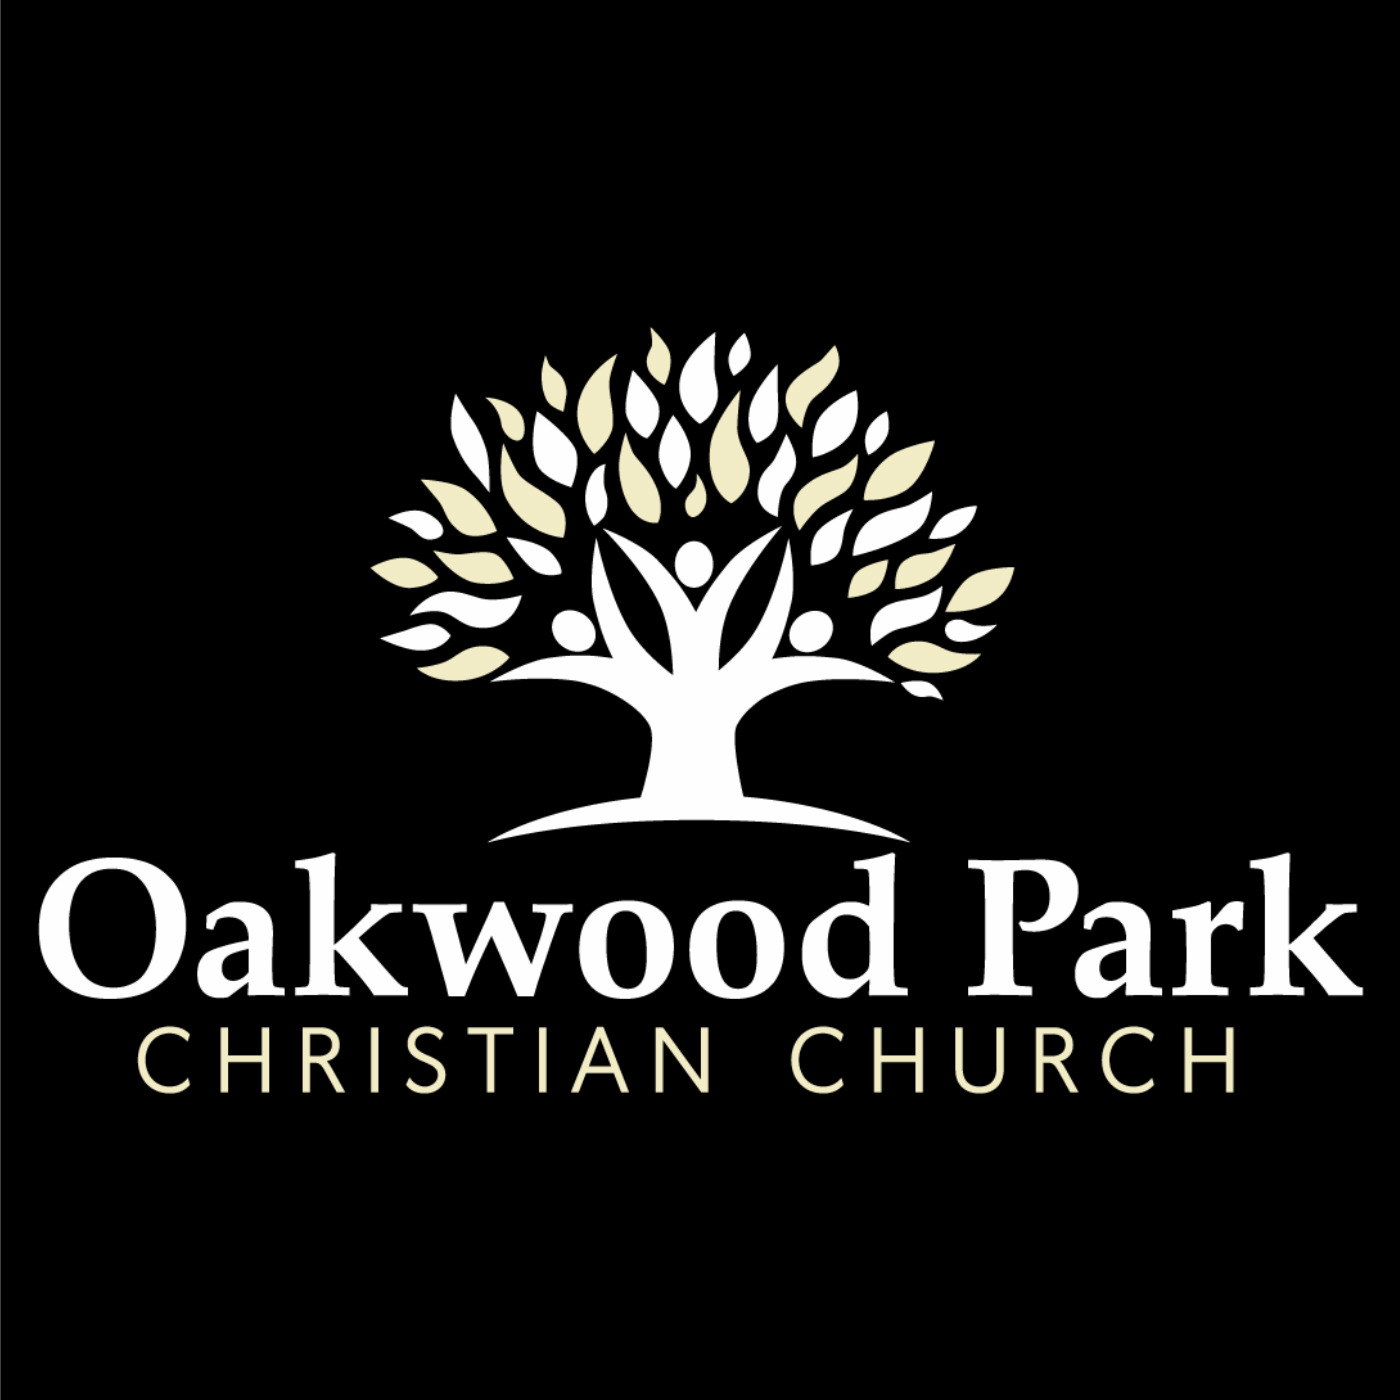 Oakwood Park Christian Church